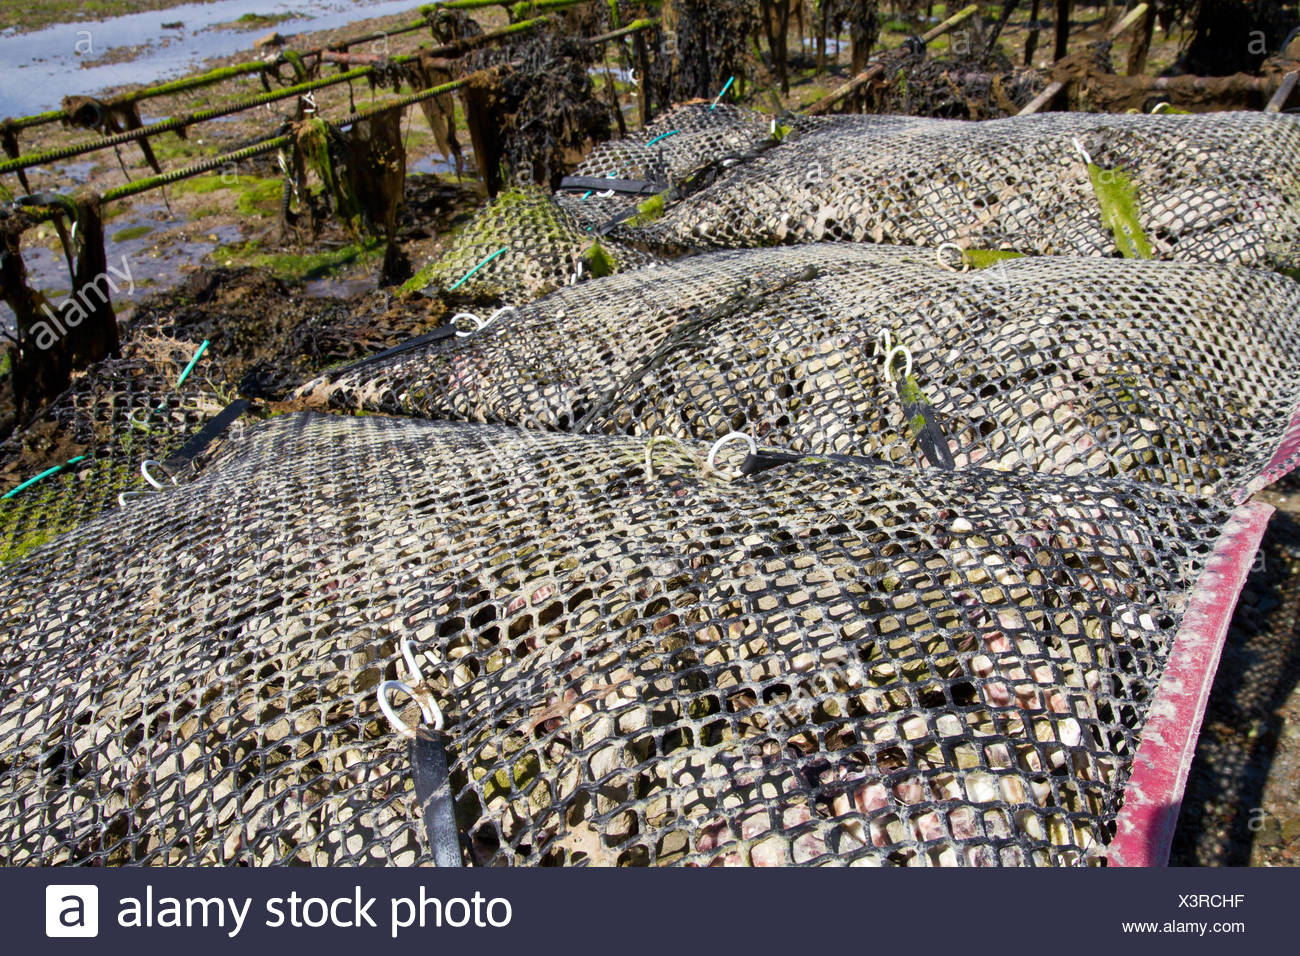 Oyster beds, Jersey, UK Stock Photo